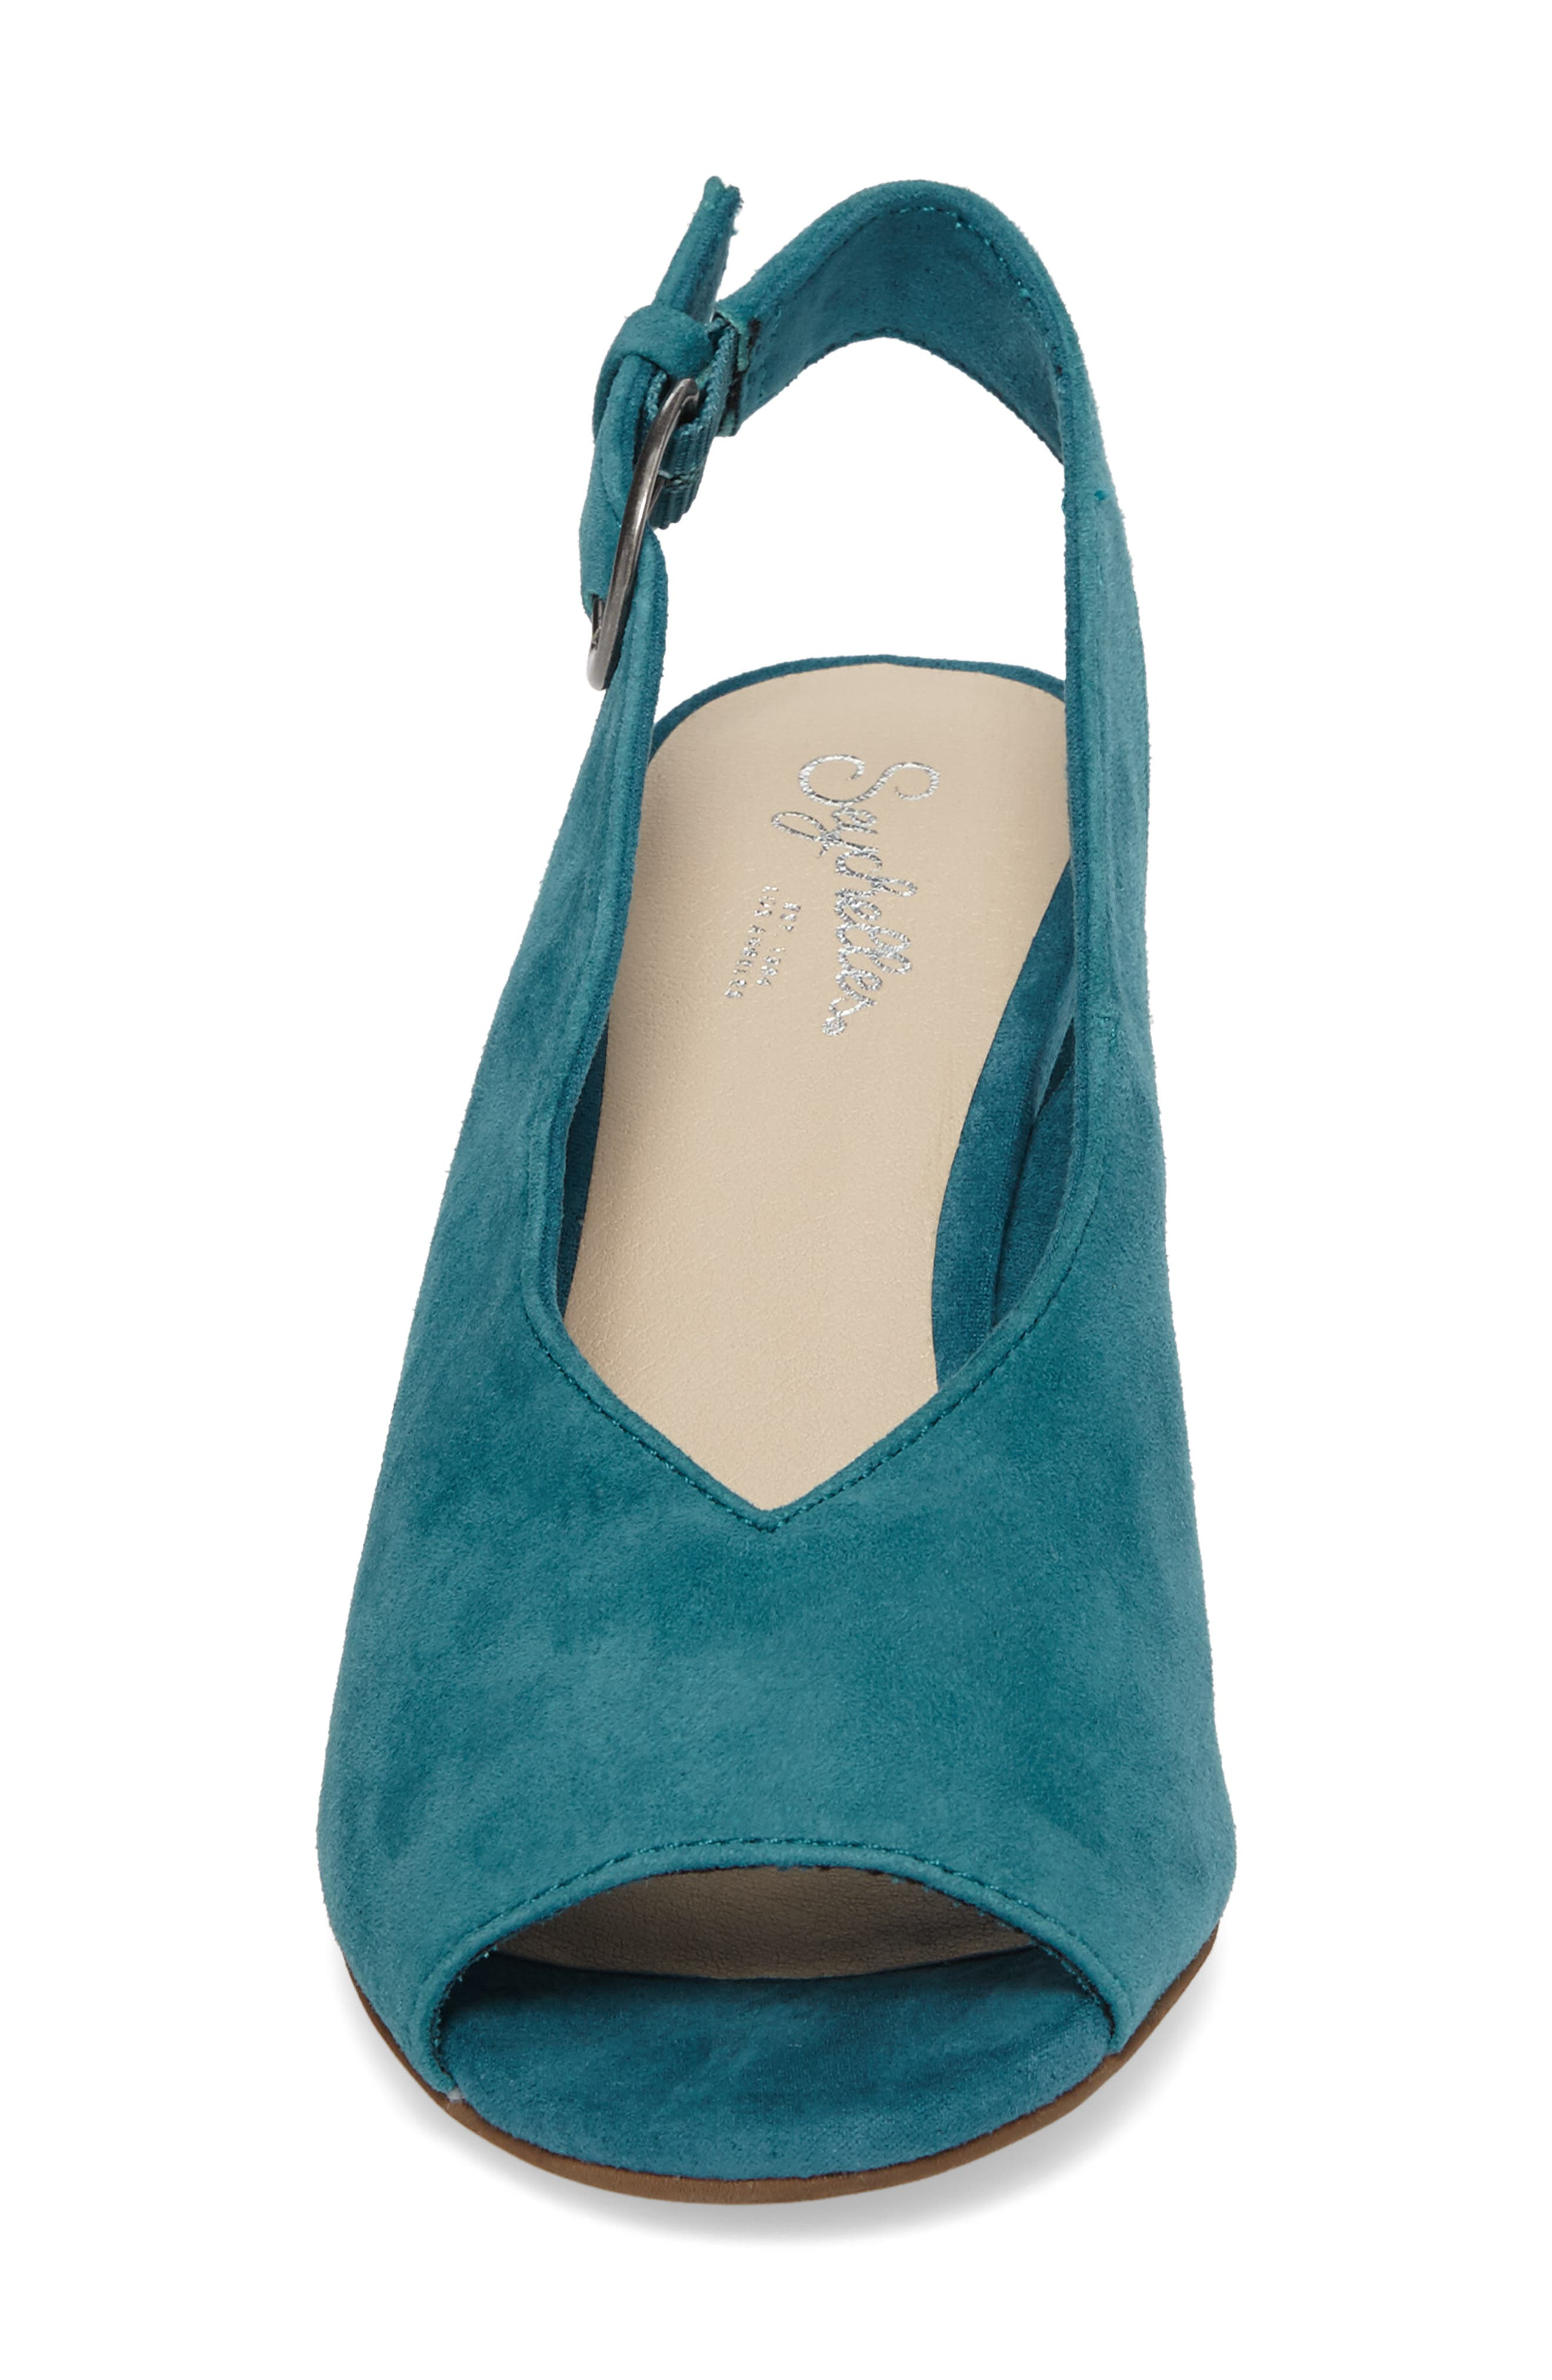 Playwright Slingback Sandal,                             Alternate thumbnail 4, color,                             TEAL SUEDE